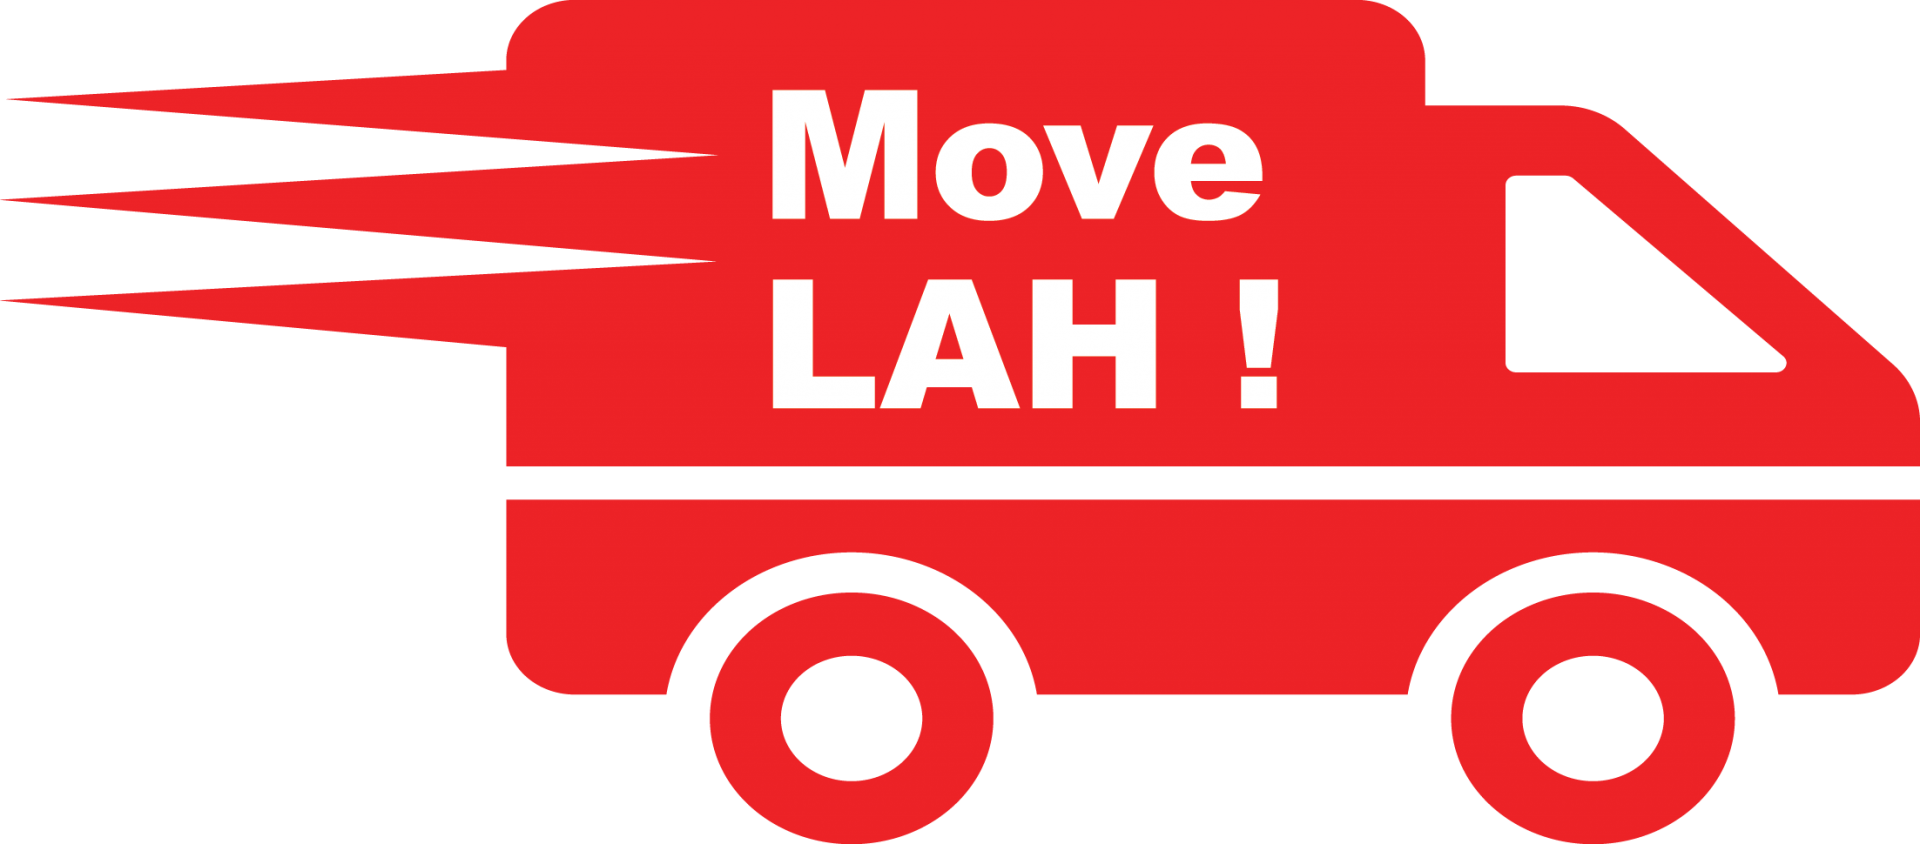 Driving clipart tired driver. Movelah connecting you movers